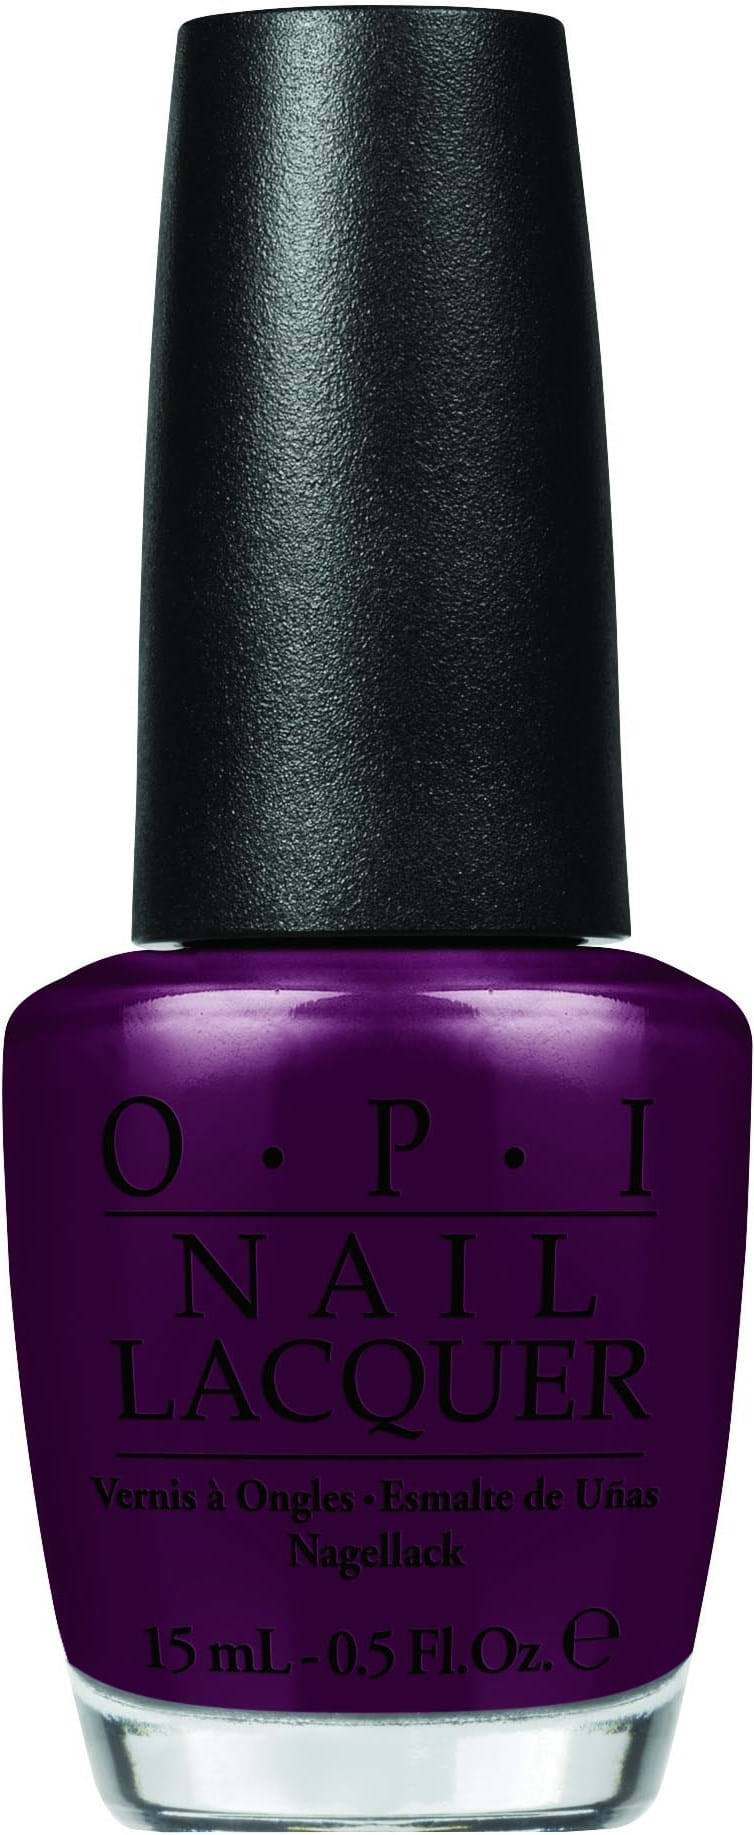 OPI Classic Collection Nail Lacquer N° NL H49 Meet Me on the Star Ferry 15 ml